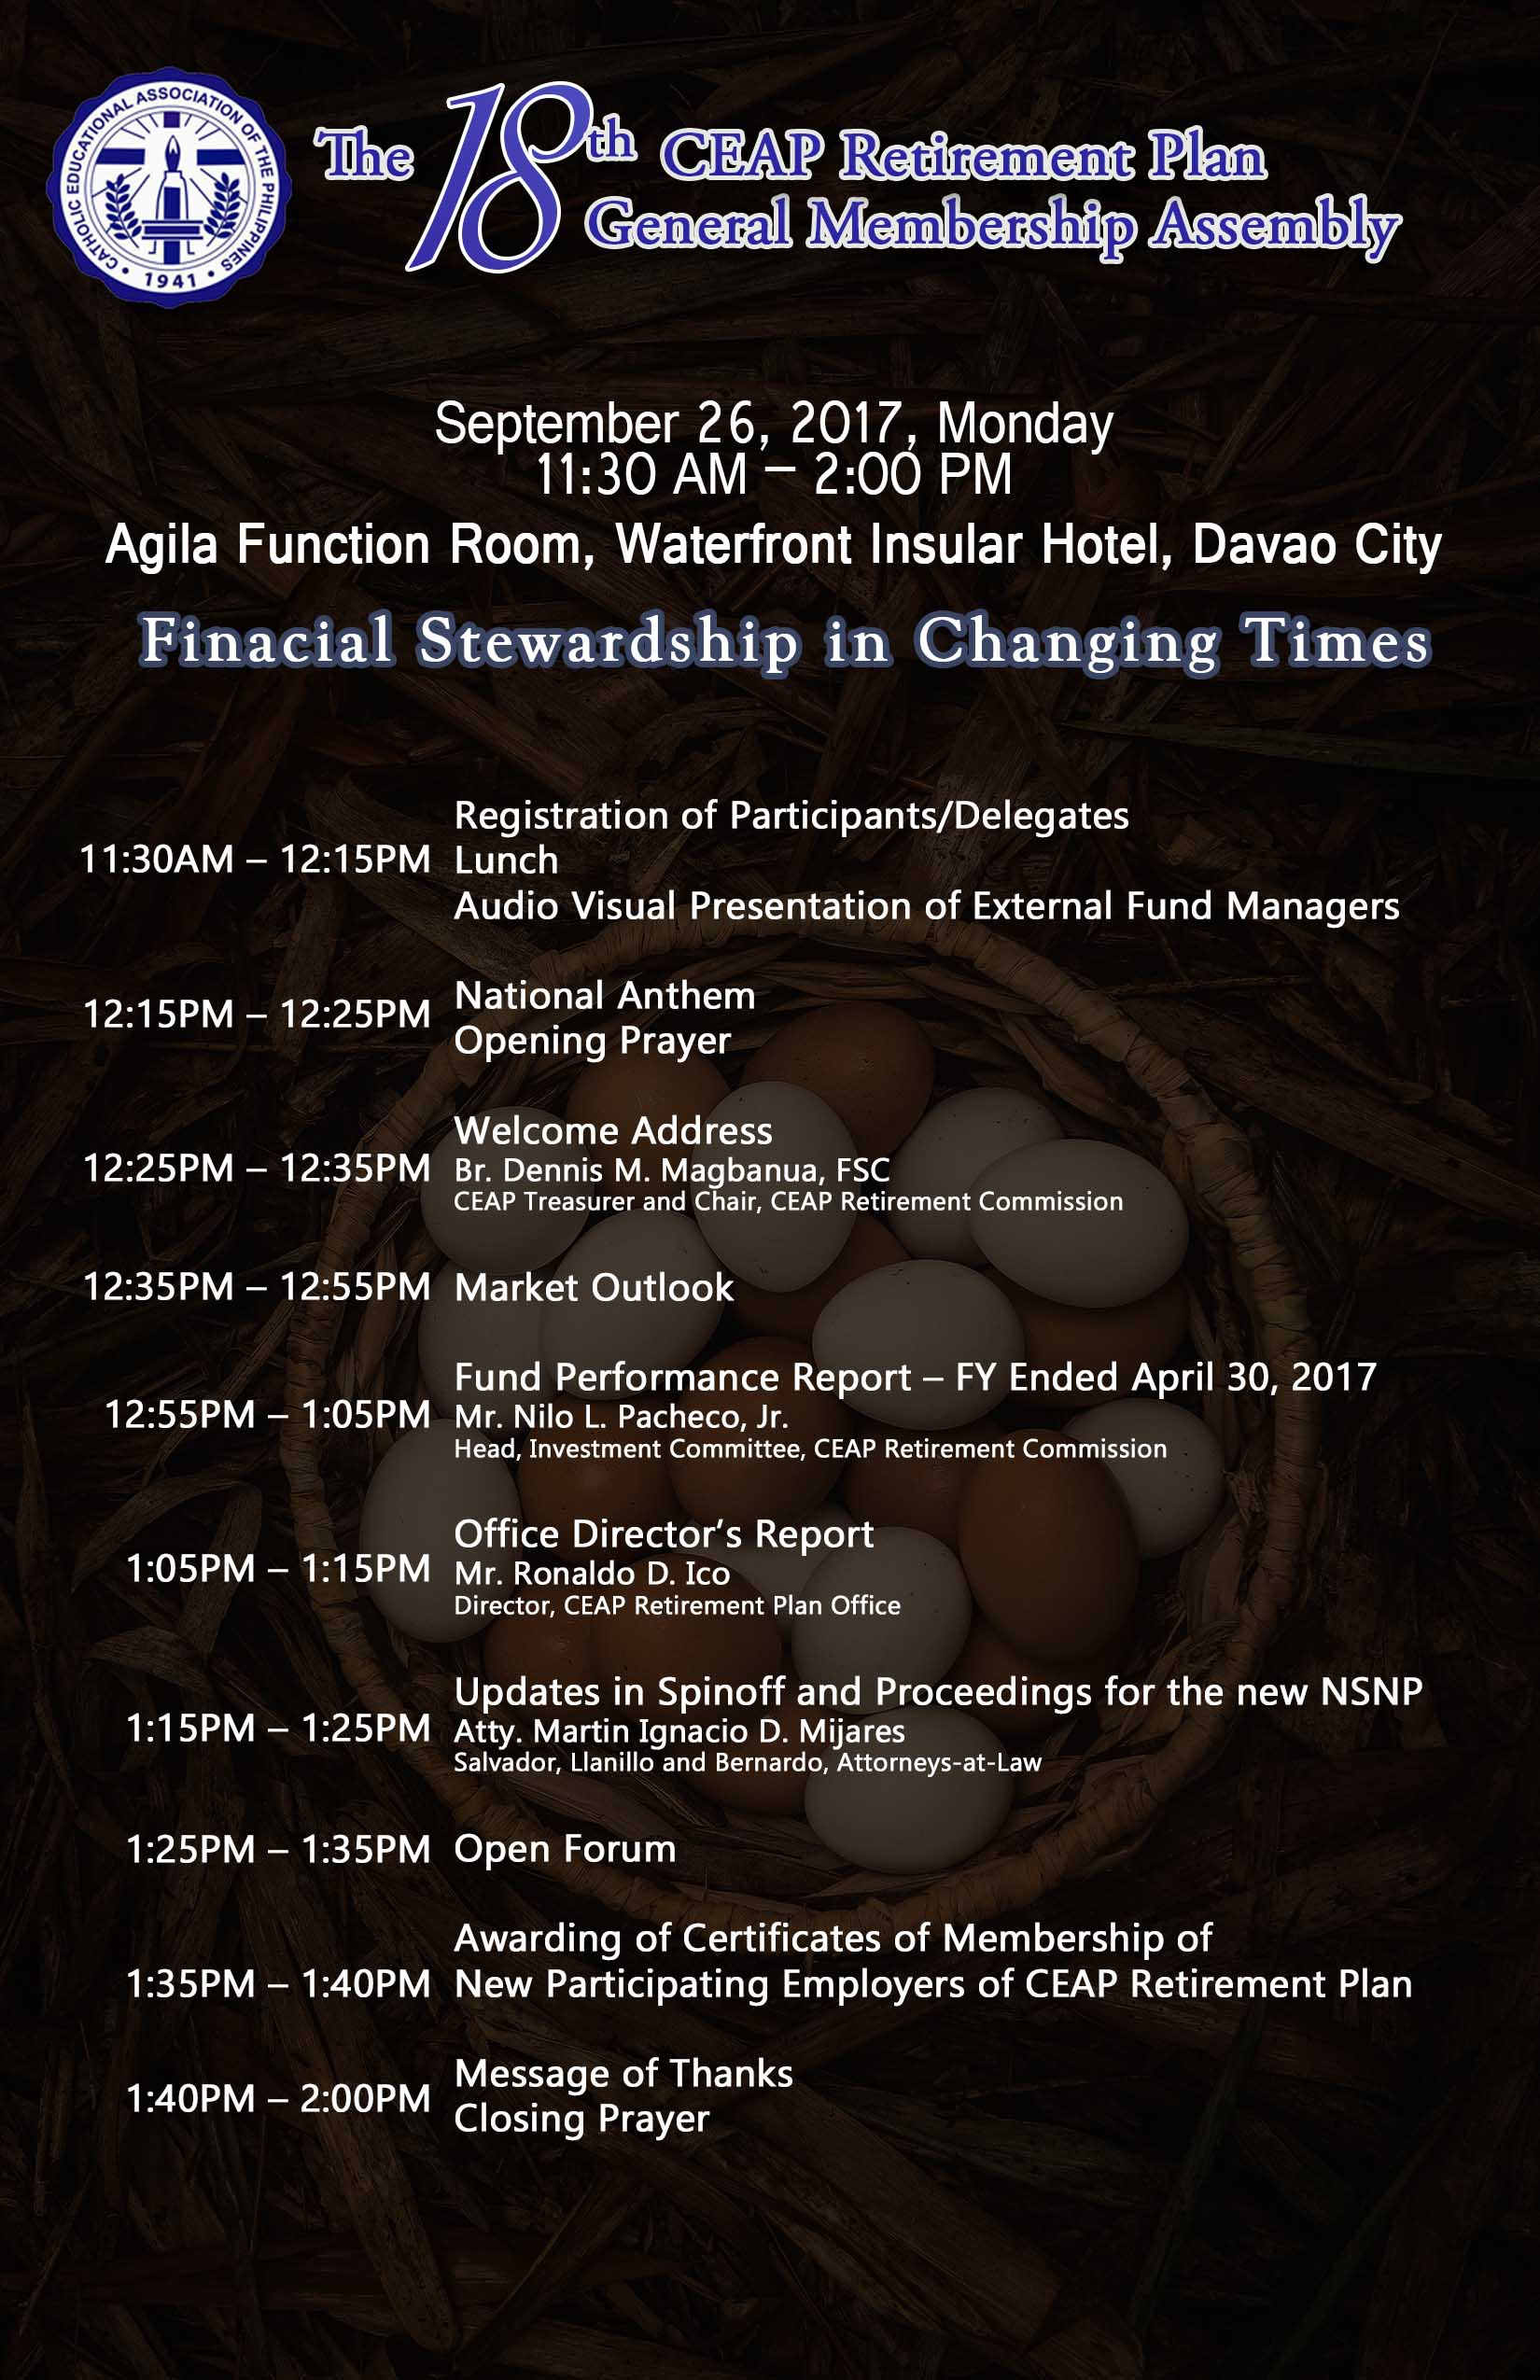 18th CEAP Retirement Plan General Membership Assembly